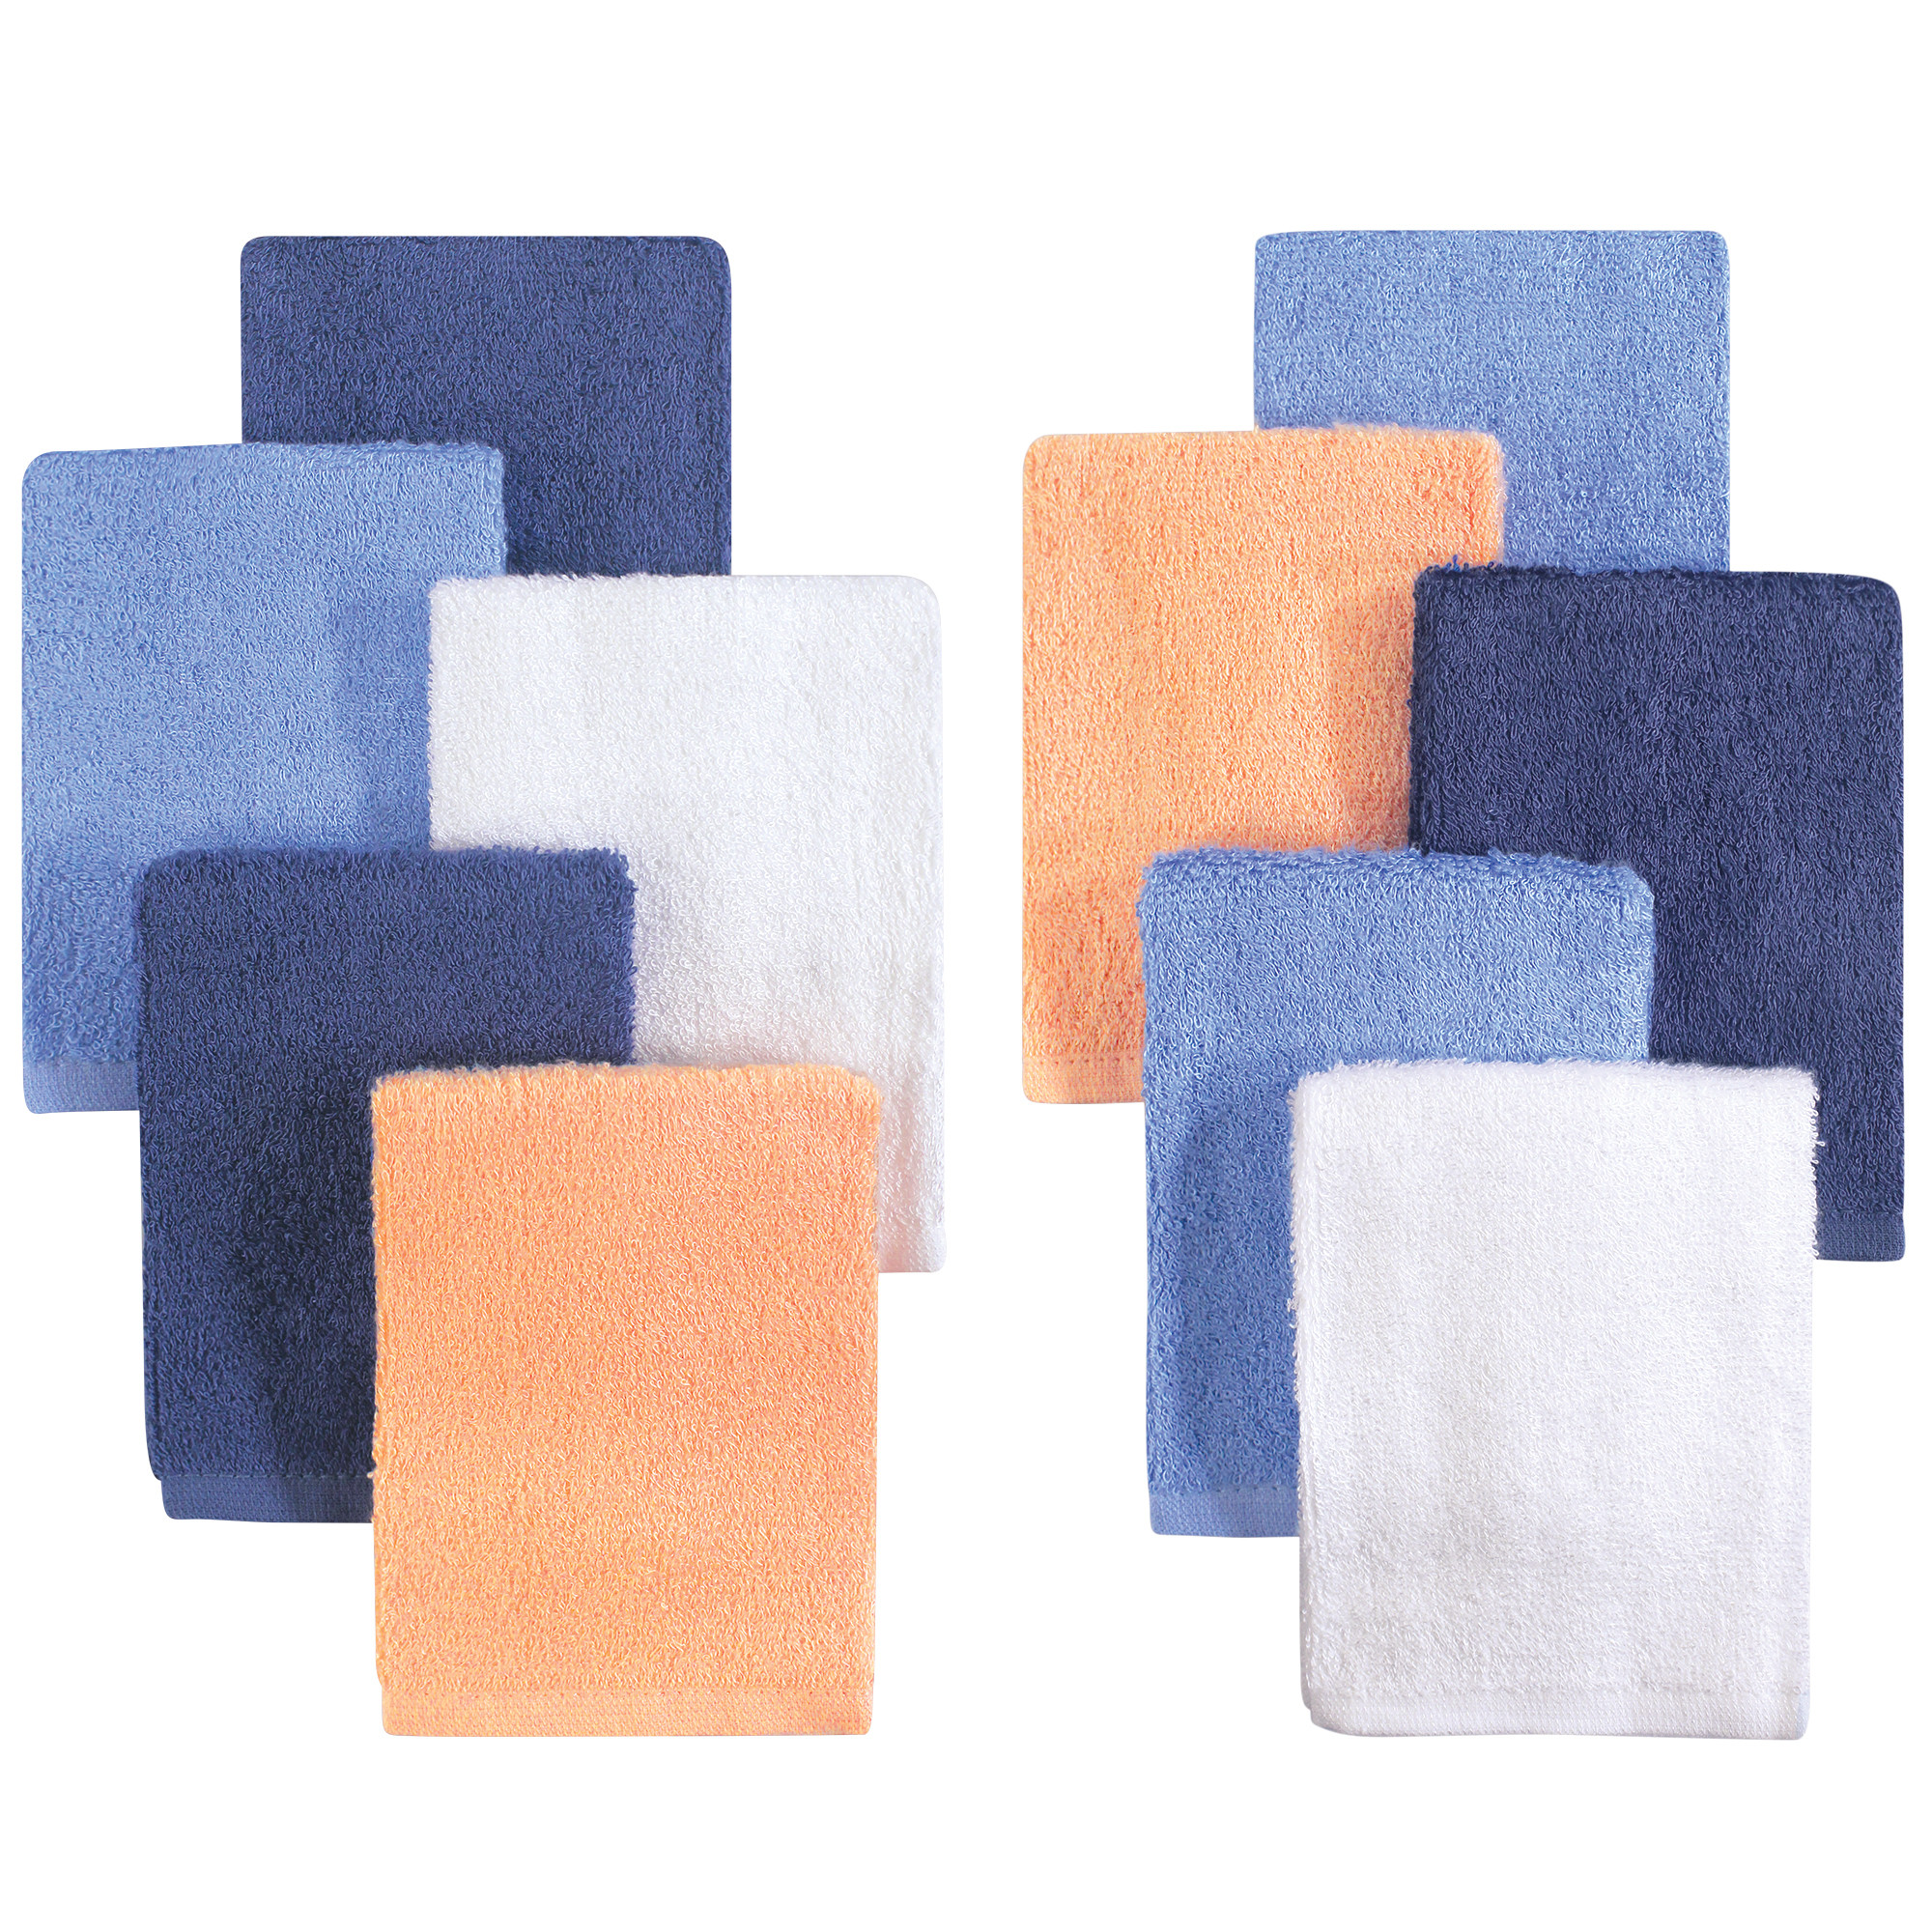 Little Treasure Baby Boy and Baby Girl Luxuriously Soft Washcloths, 10 Pack, Blue Orange